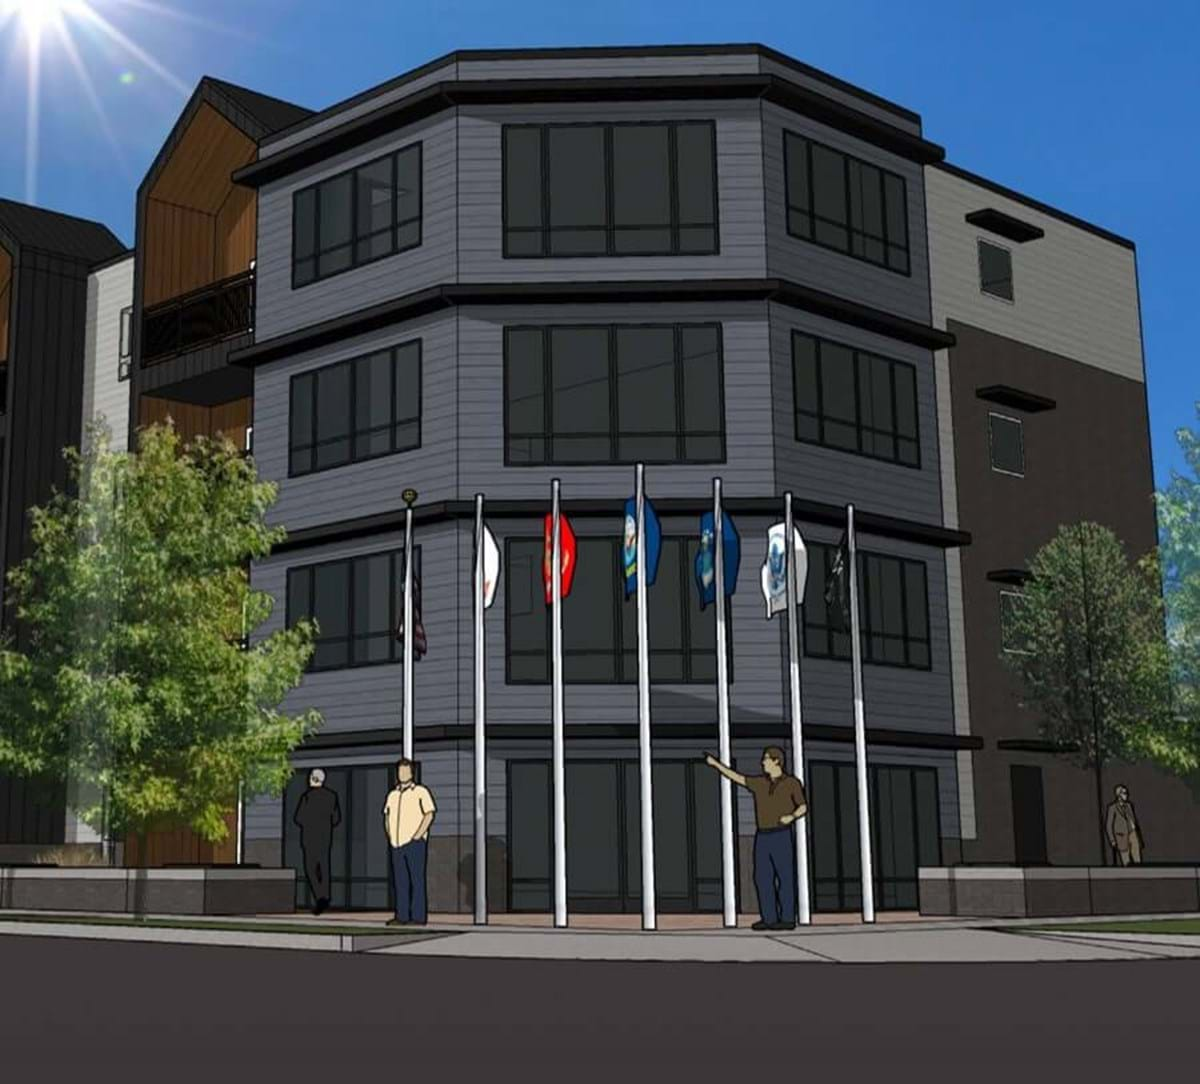 Rendering of a four story building with 7 flag poles in front of it.